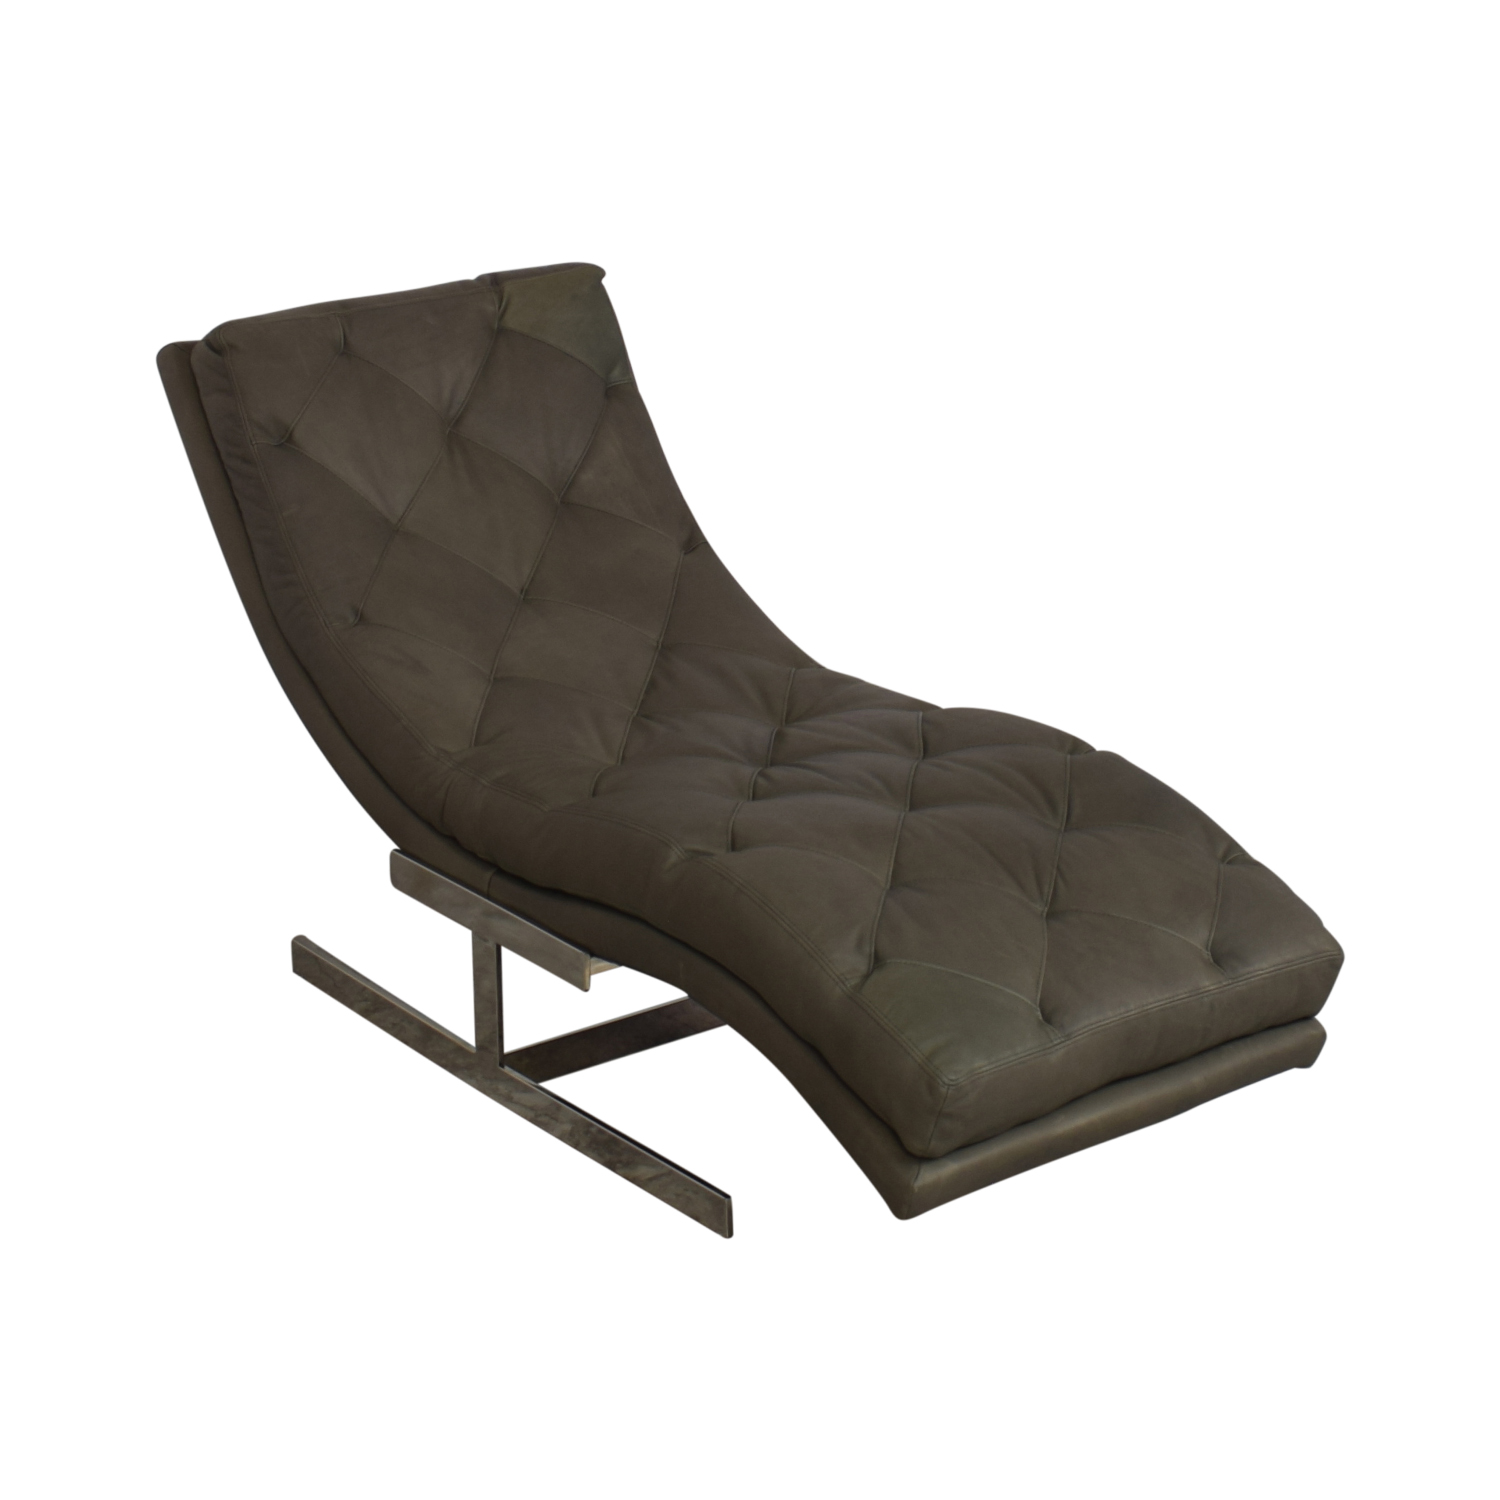 buy Restoration Hardware Restoration Hardware Royce Chaise online